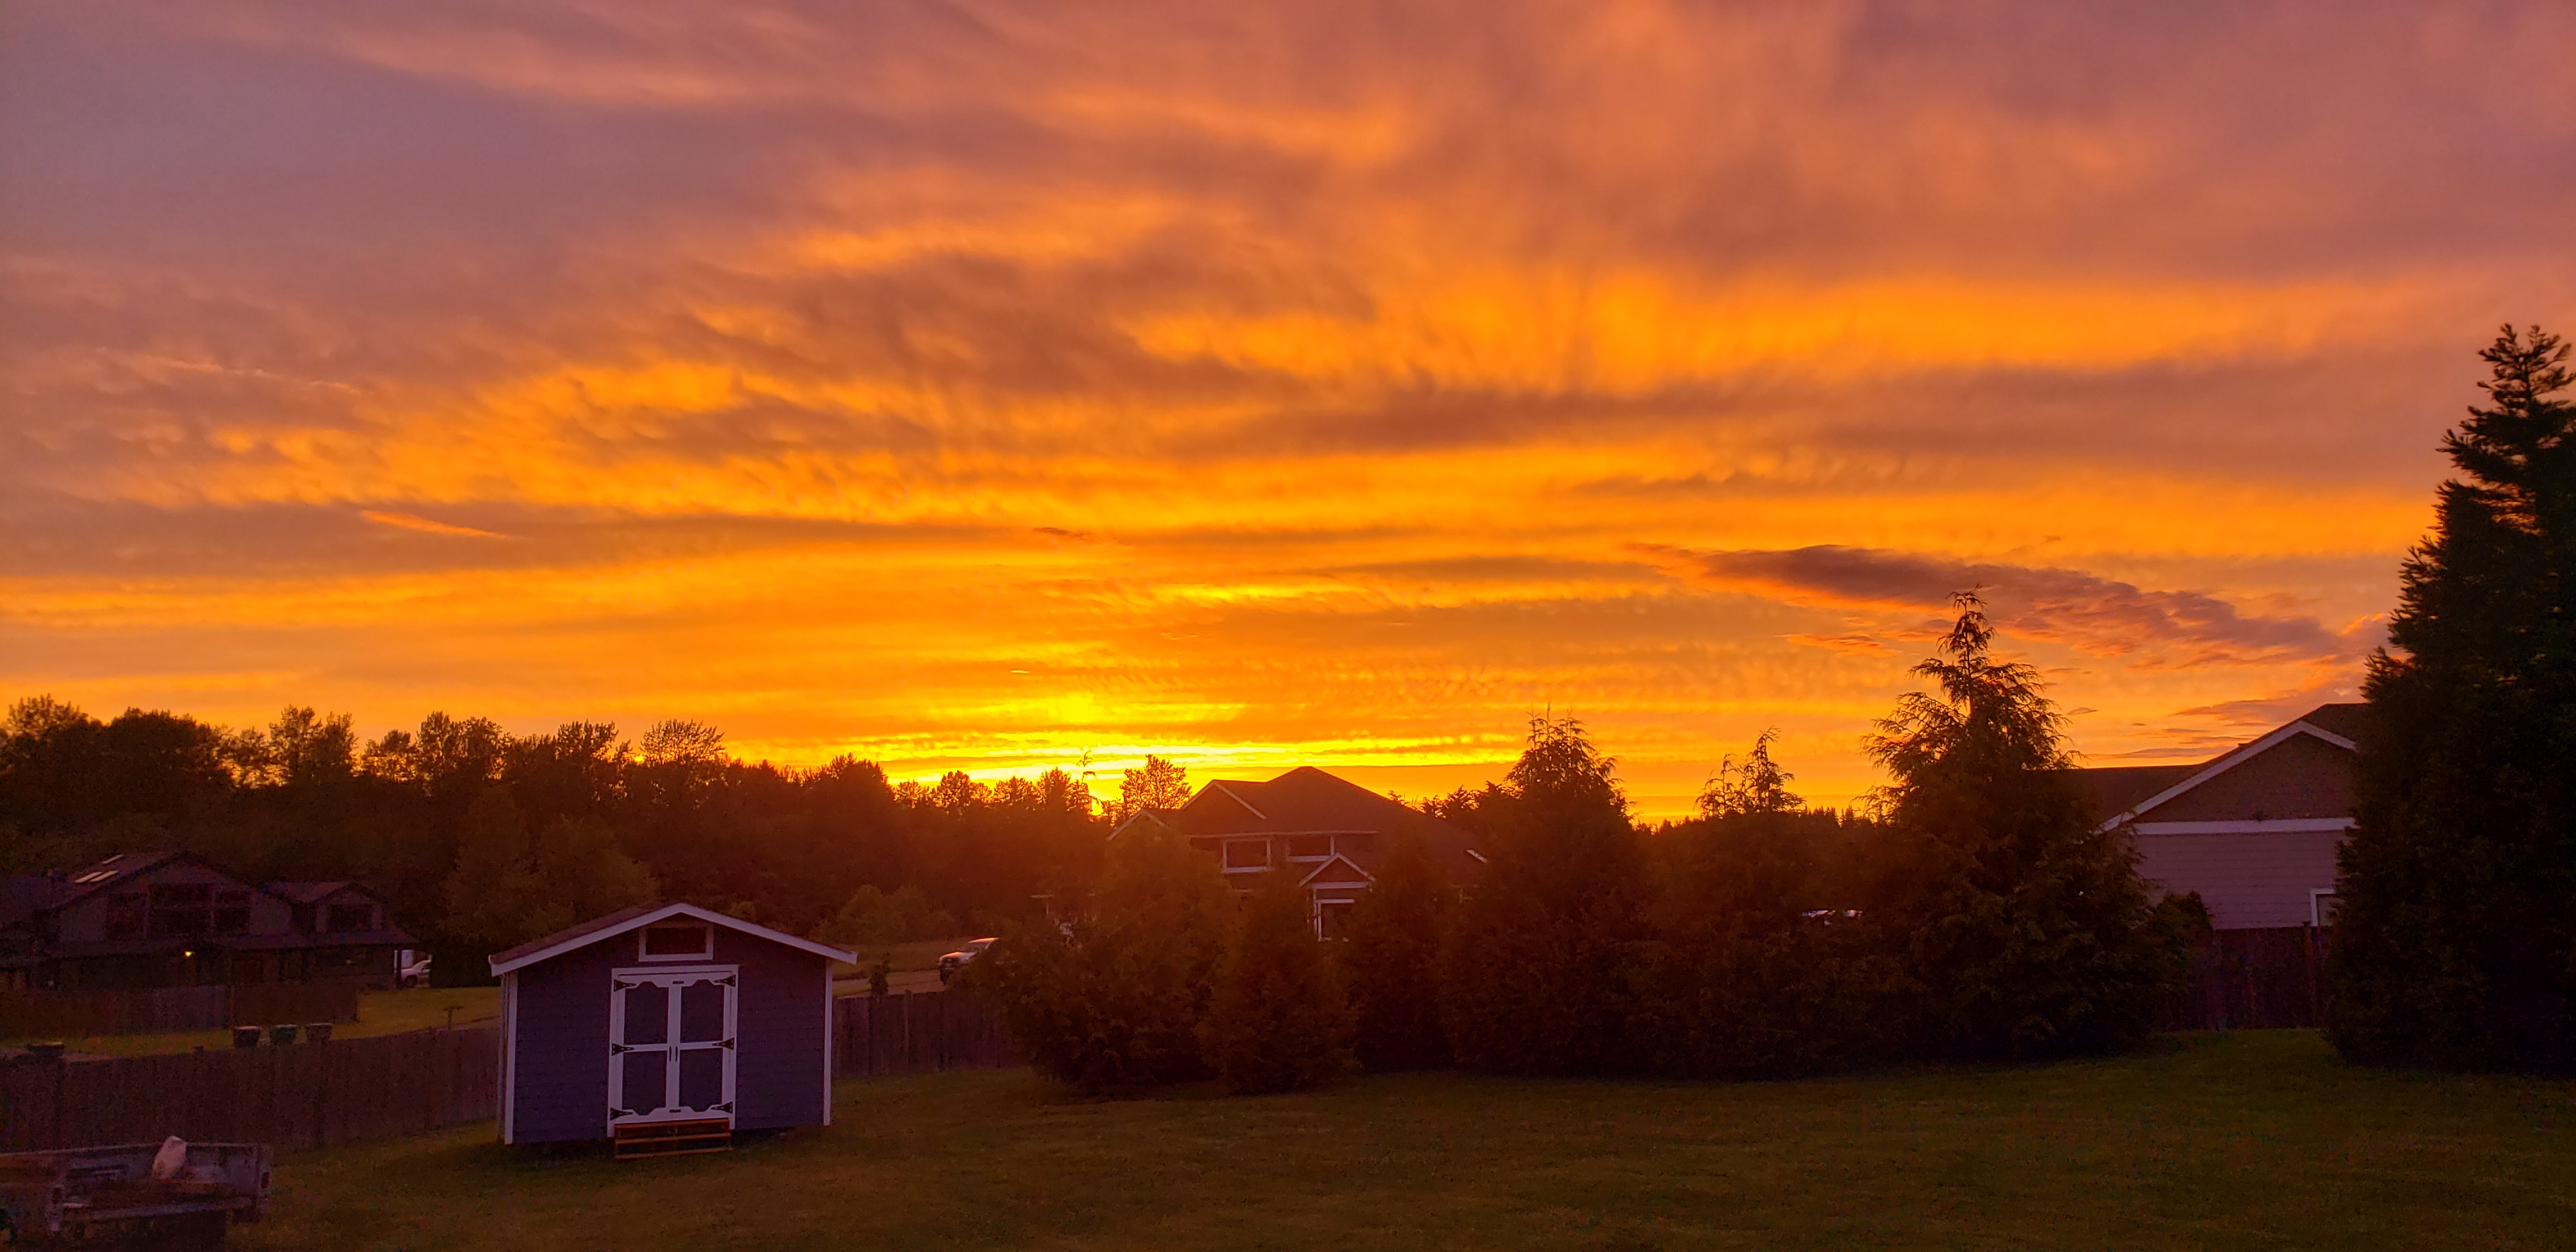 Sunset picture from Lakewood near Stanwood Wa